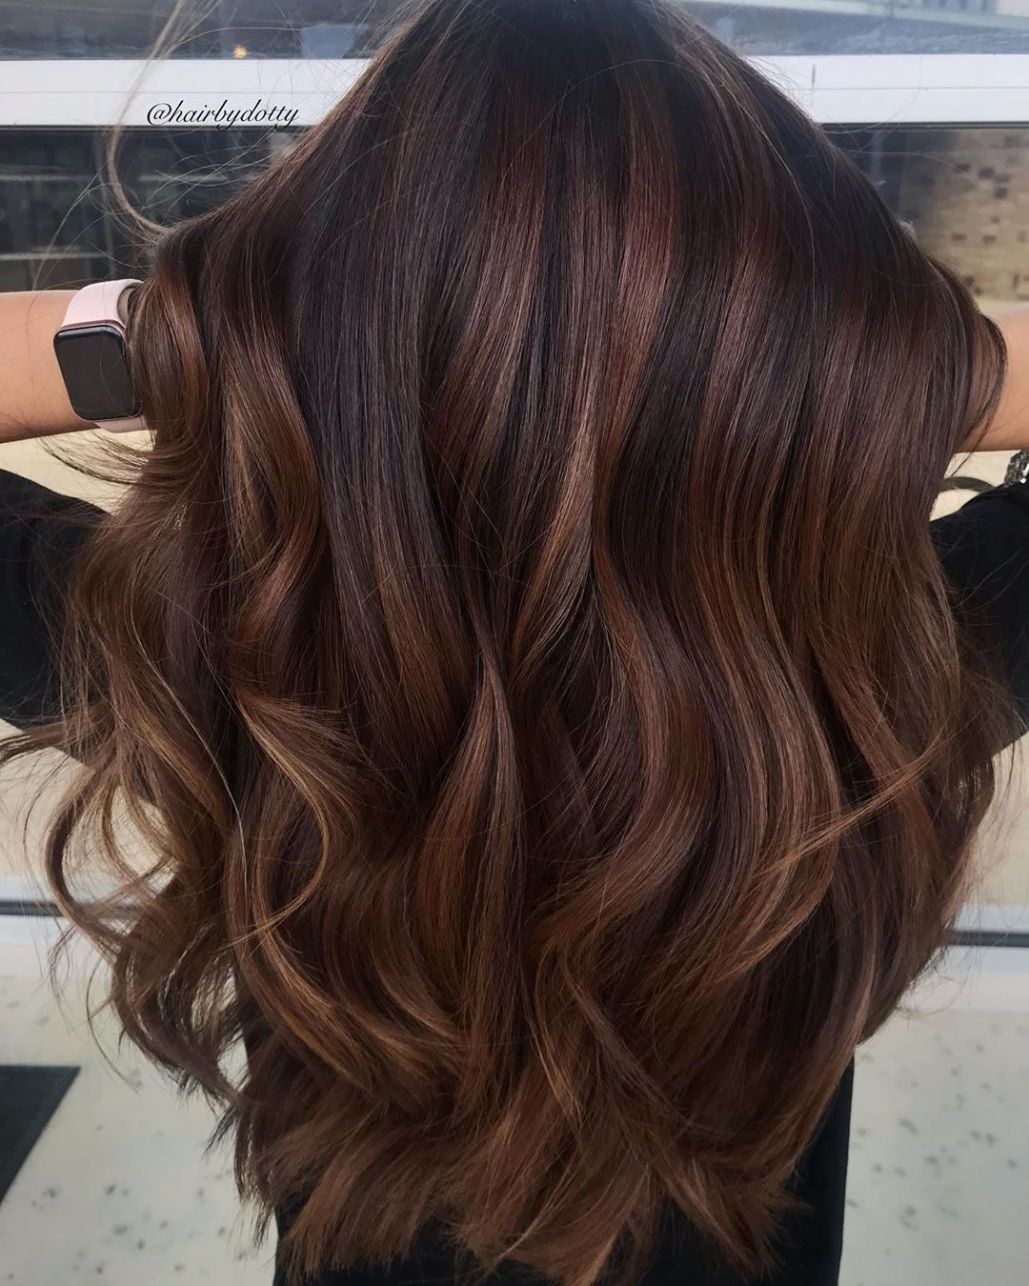 50 Best Hair Colors – New Hair Color Ideas & Trends for 2020 – Hair Adviser